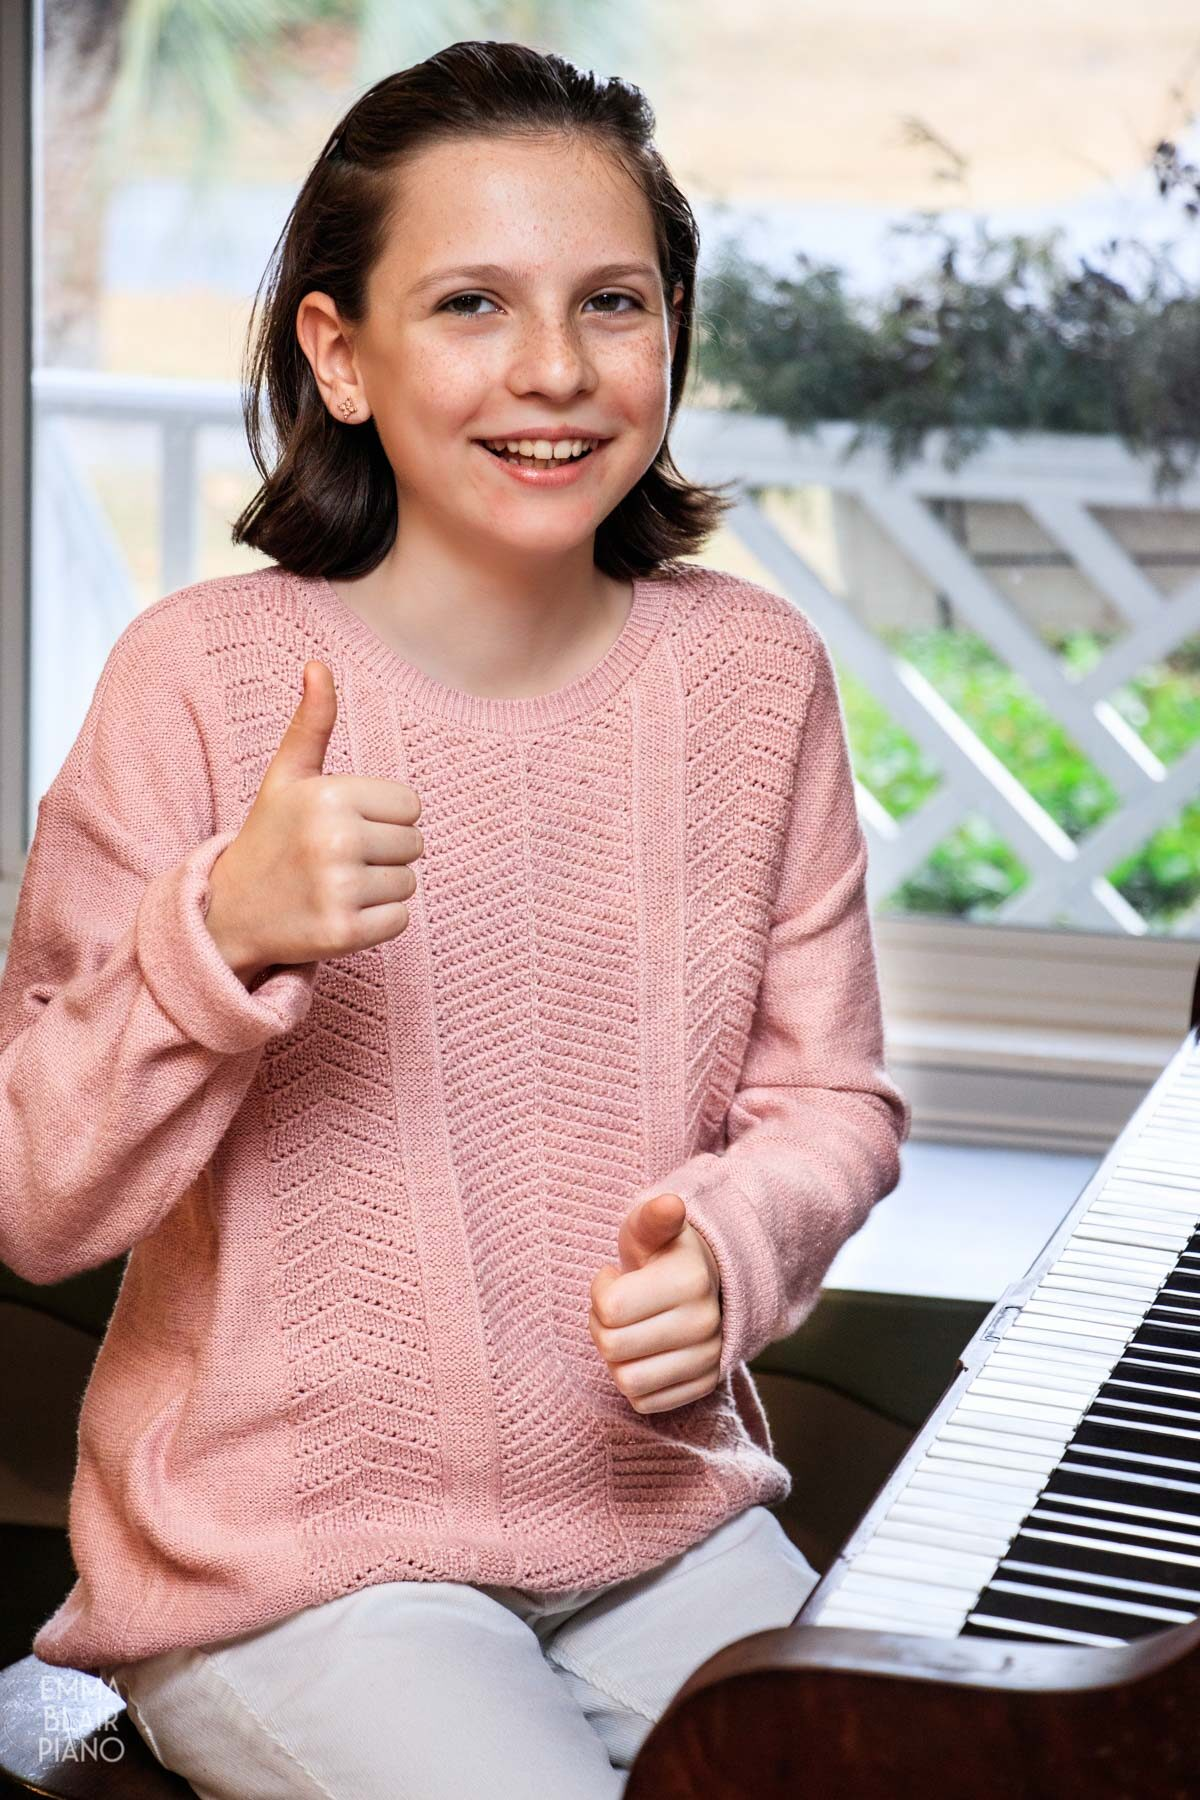 young girl smiling, sitting at the piano, and doing thumbs up